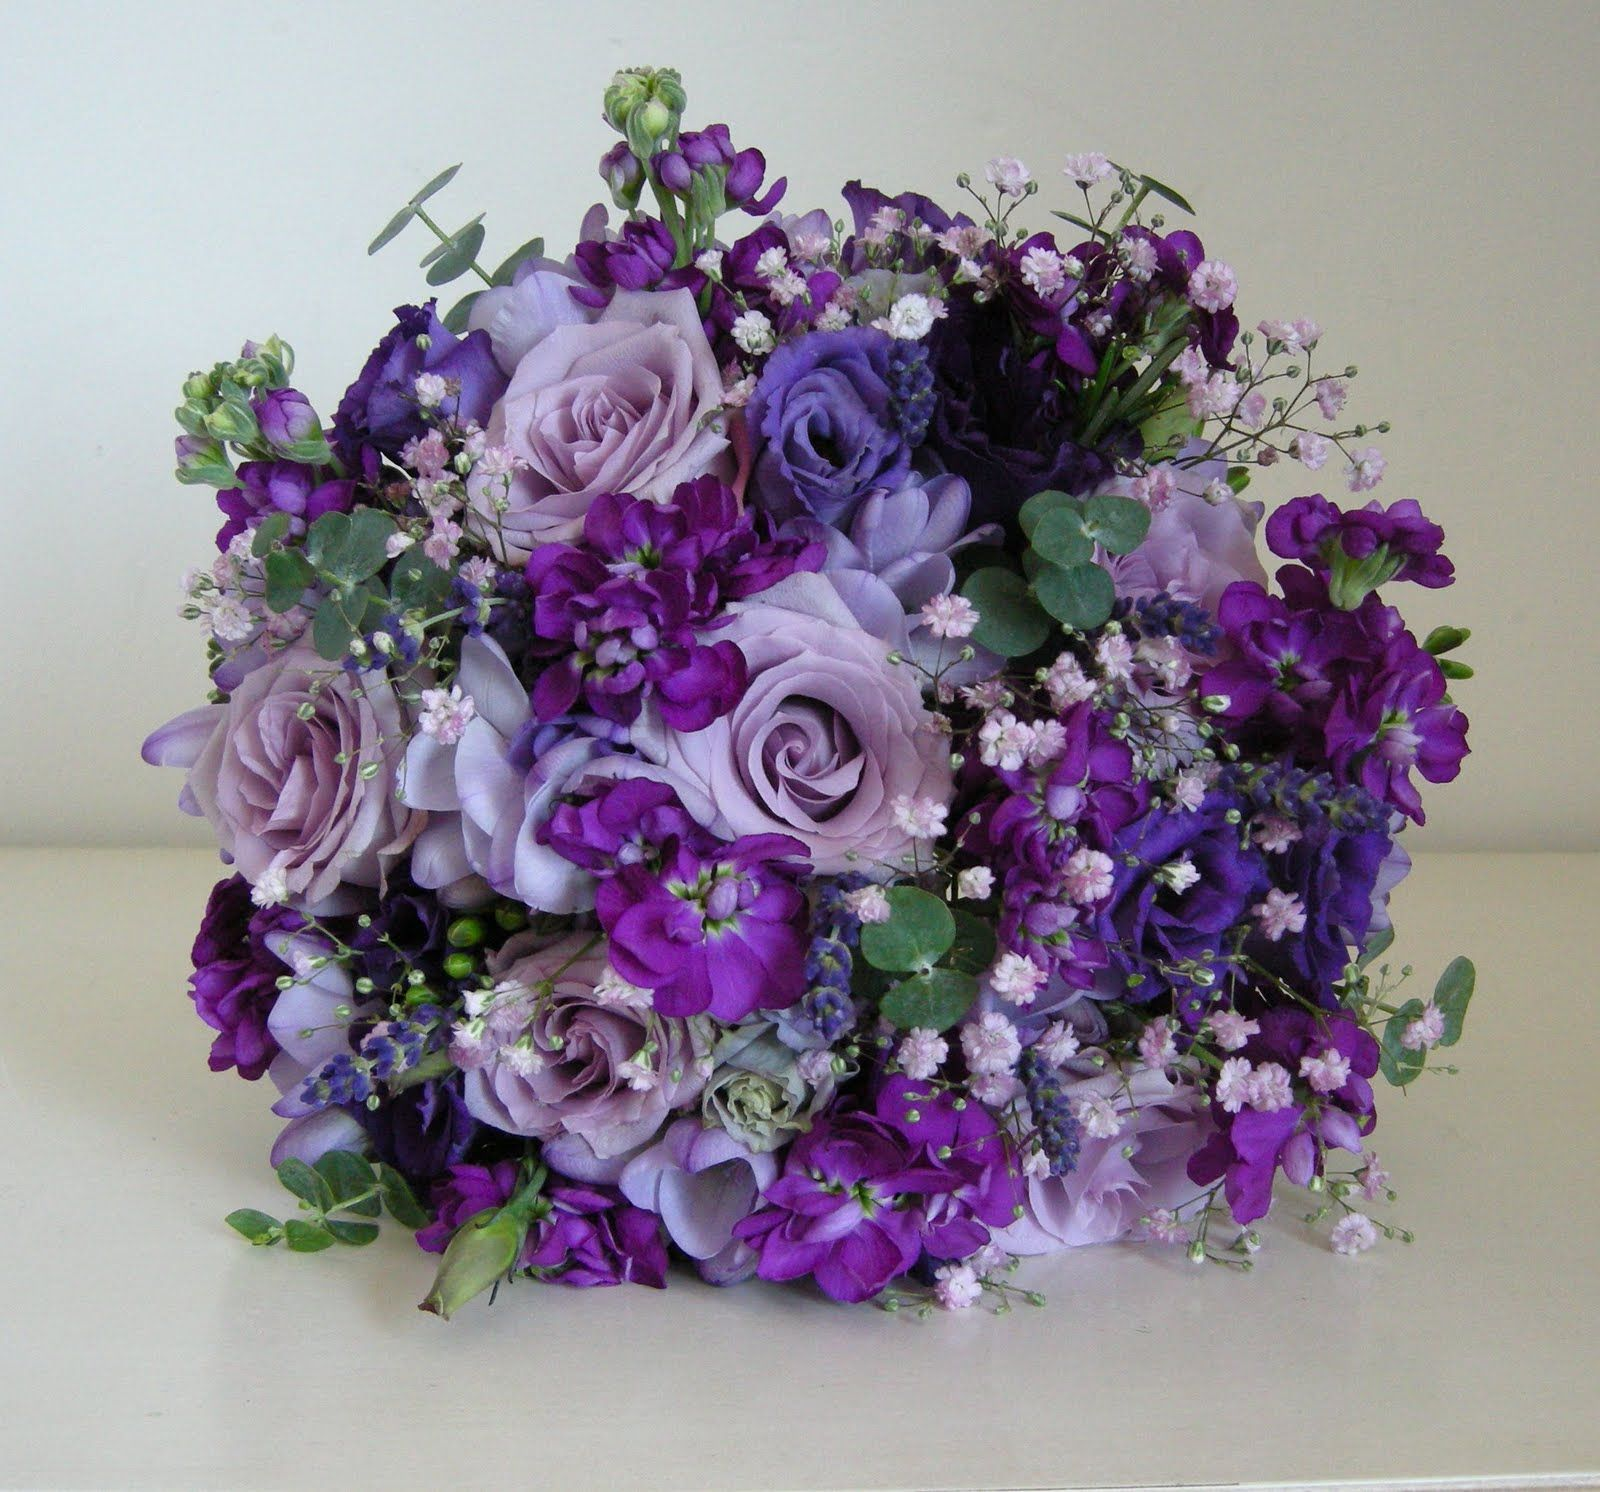 Mixed Purple Wedding Bouquets Flowers Ideas Picture Wedding Photos